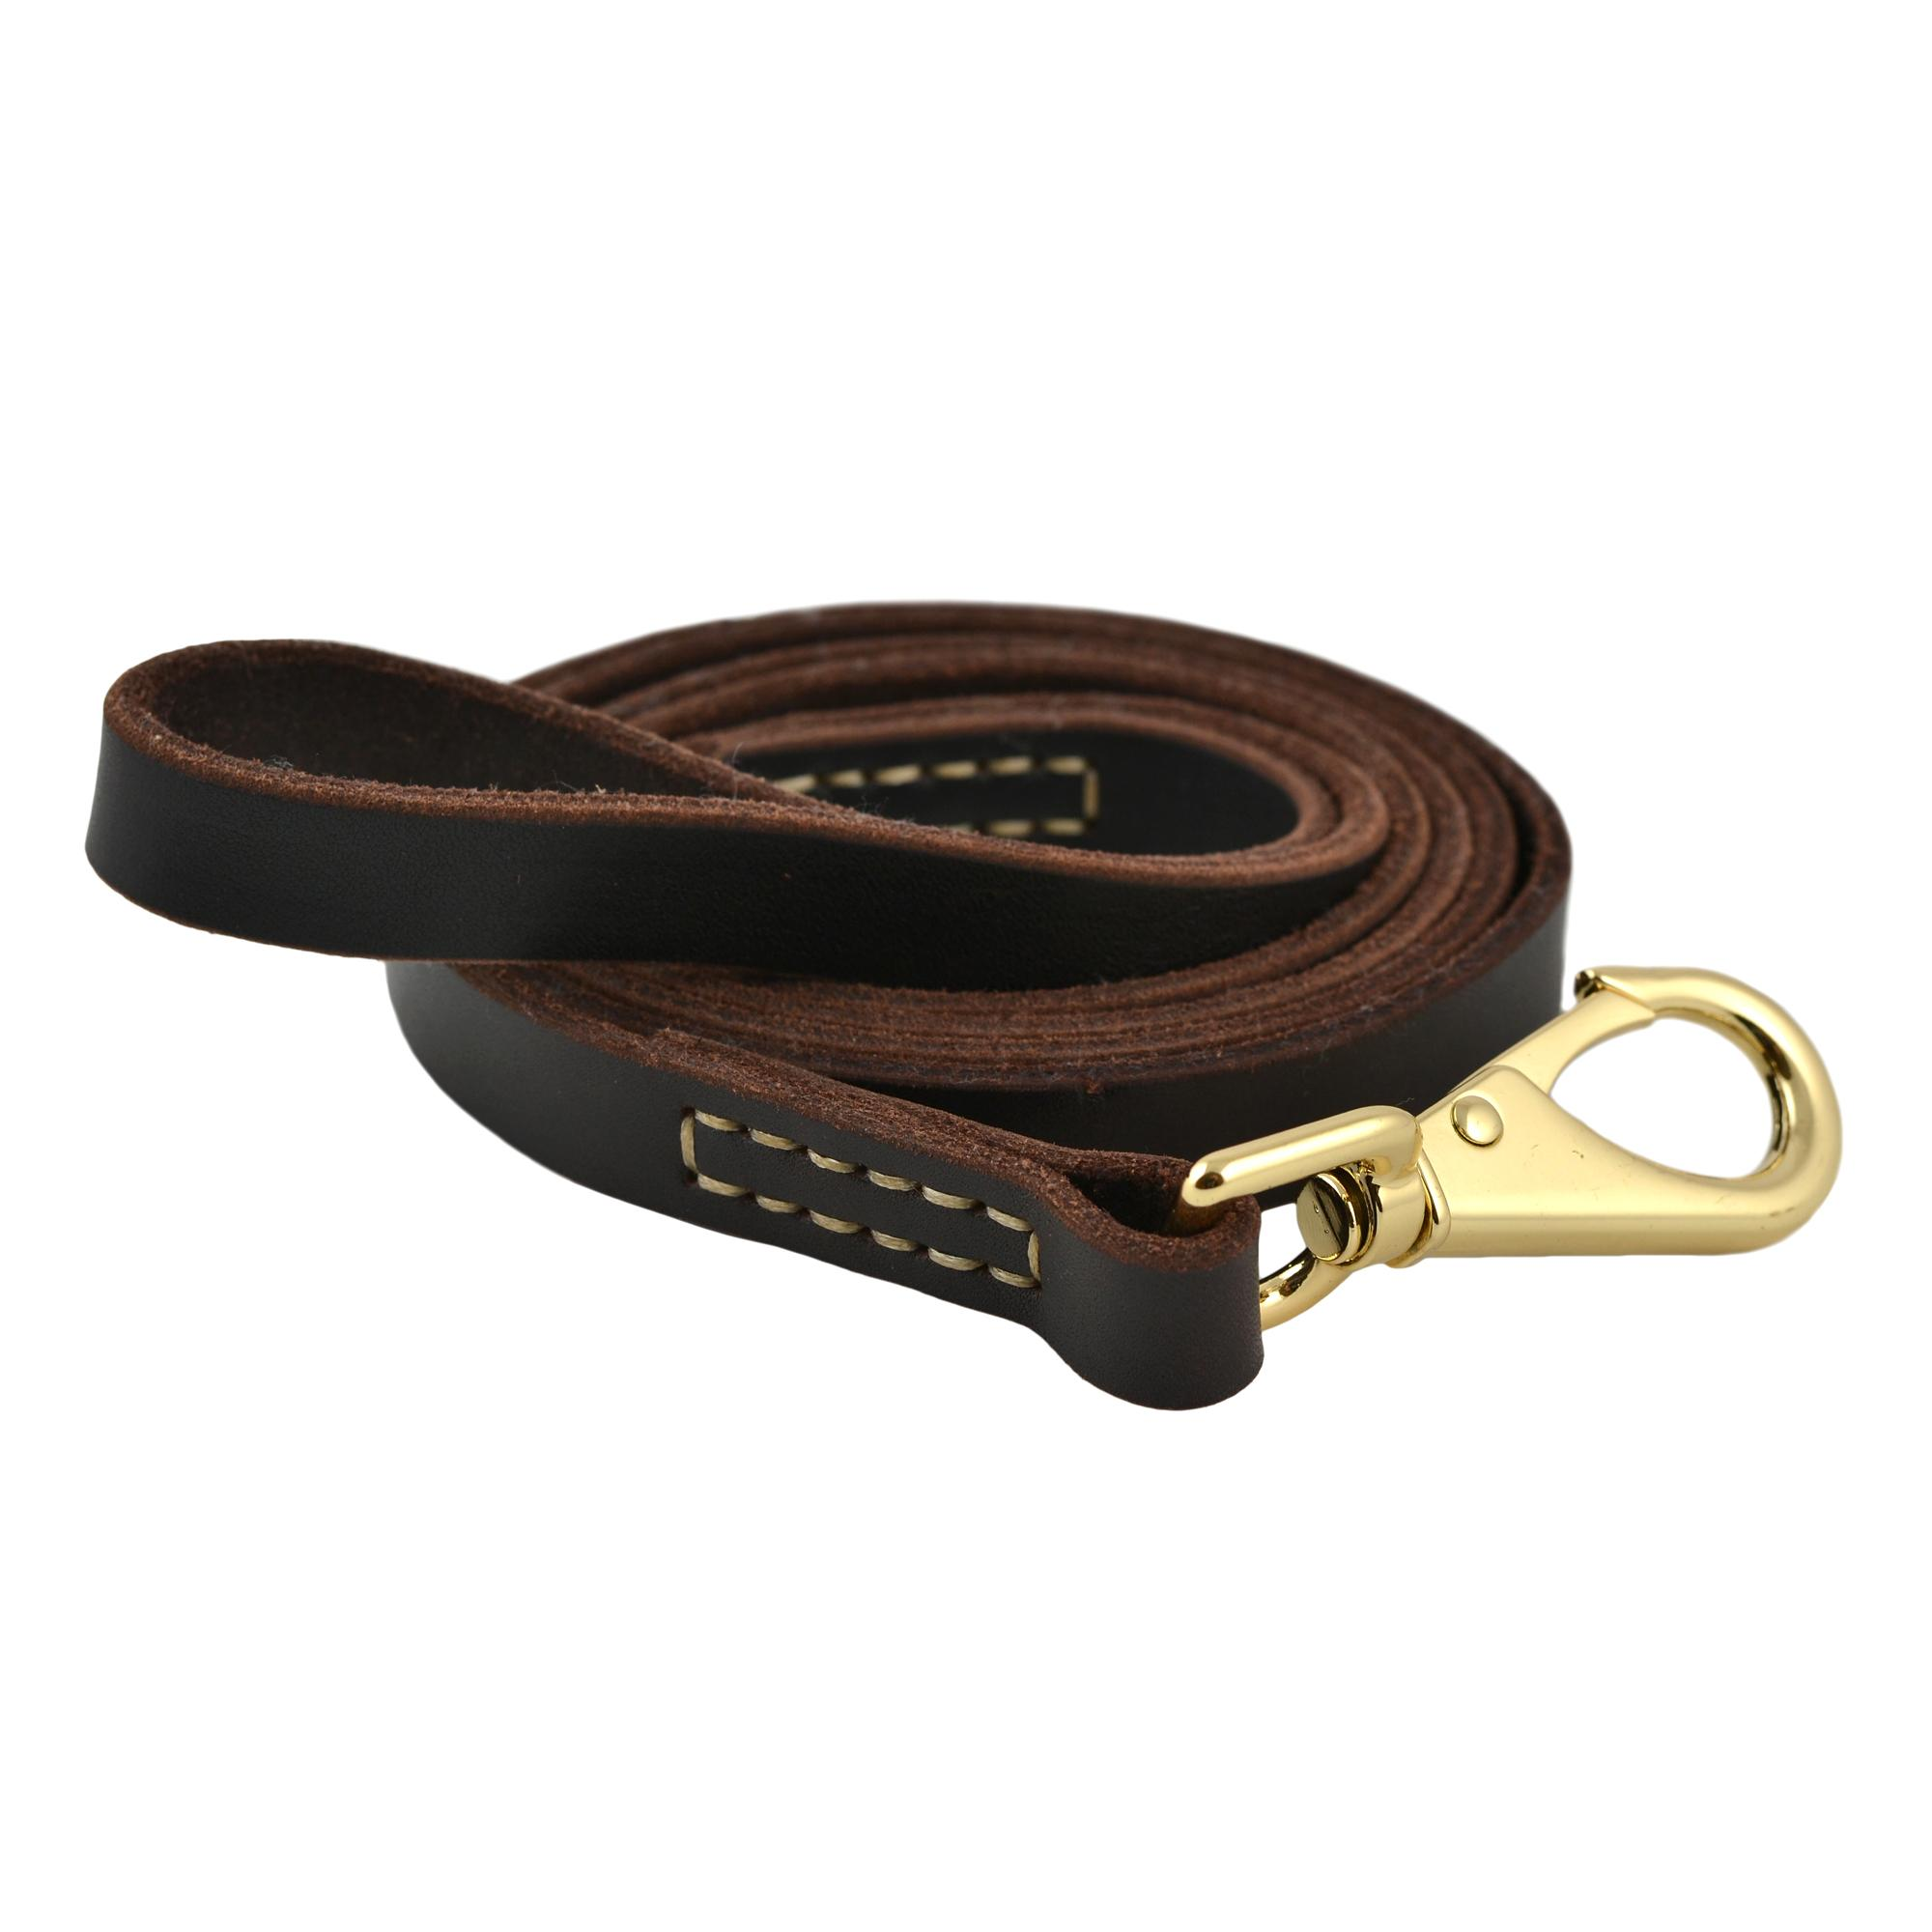 Tall Tails Genuine Leather Dog Leash Image